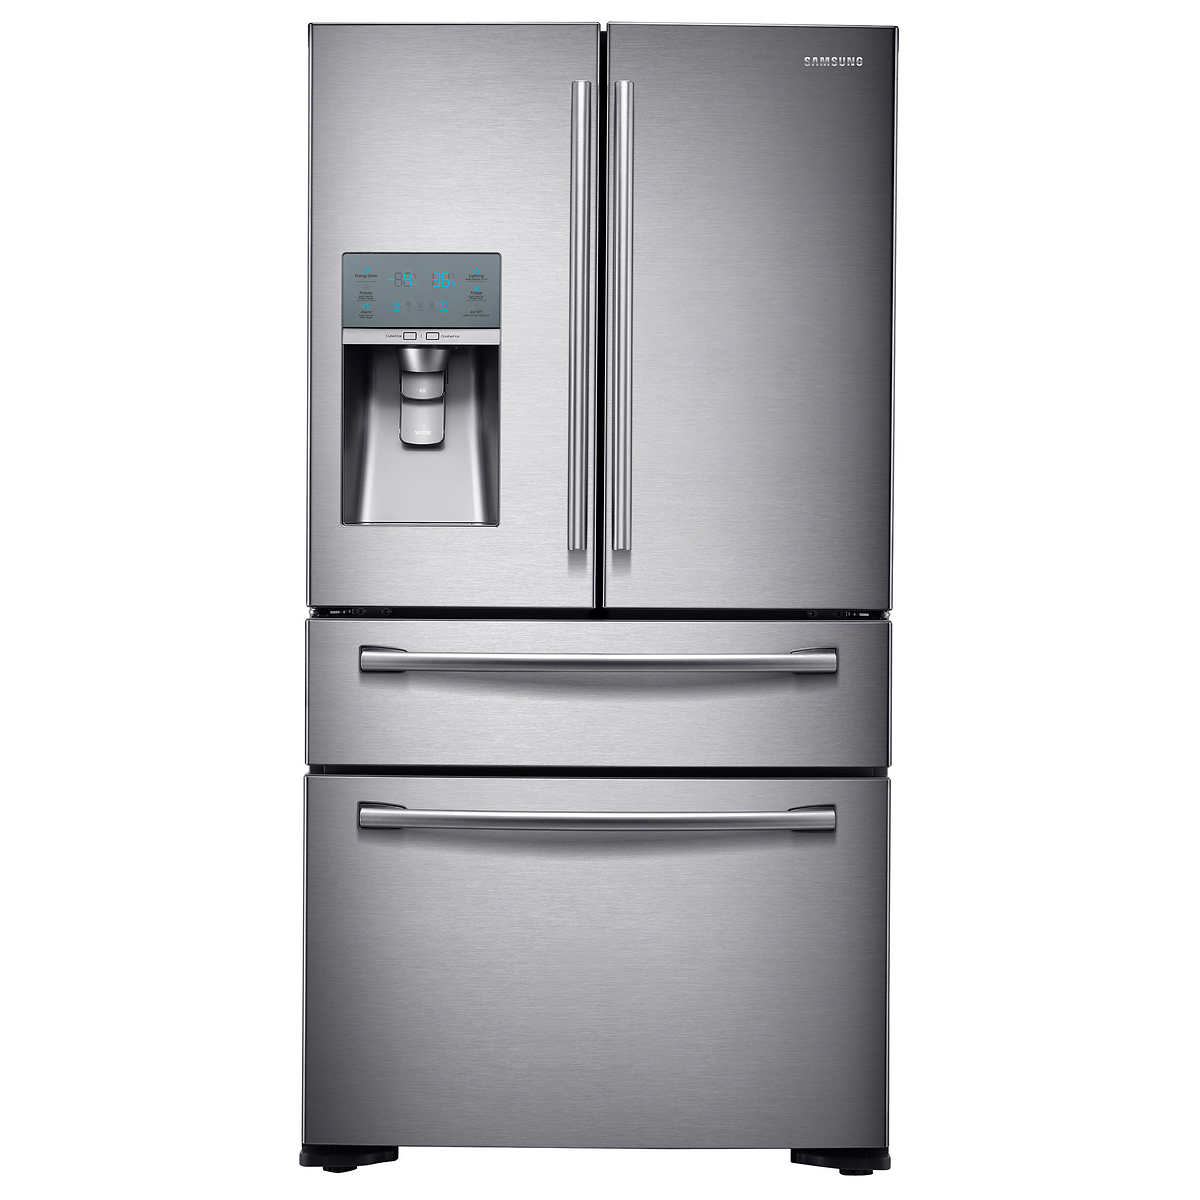 What Is The Depth Of A Counter Depth Refrigerator Samsung 23cuft 4 Door Counter Depth Refrigerator With Flexzone